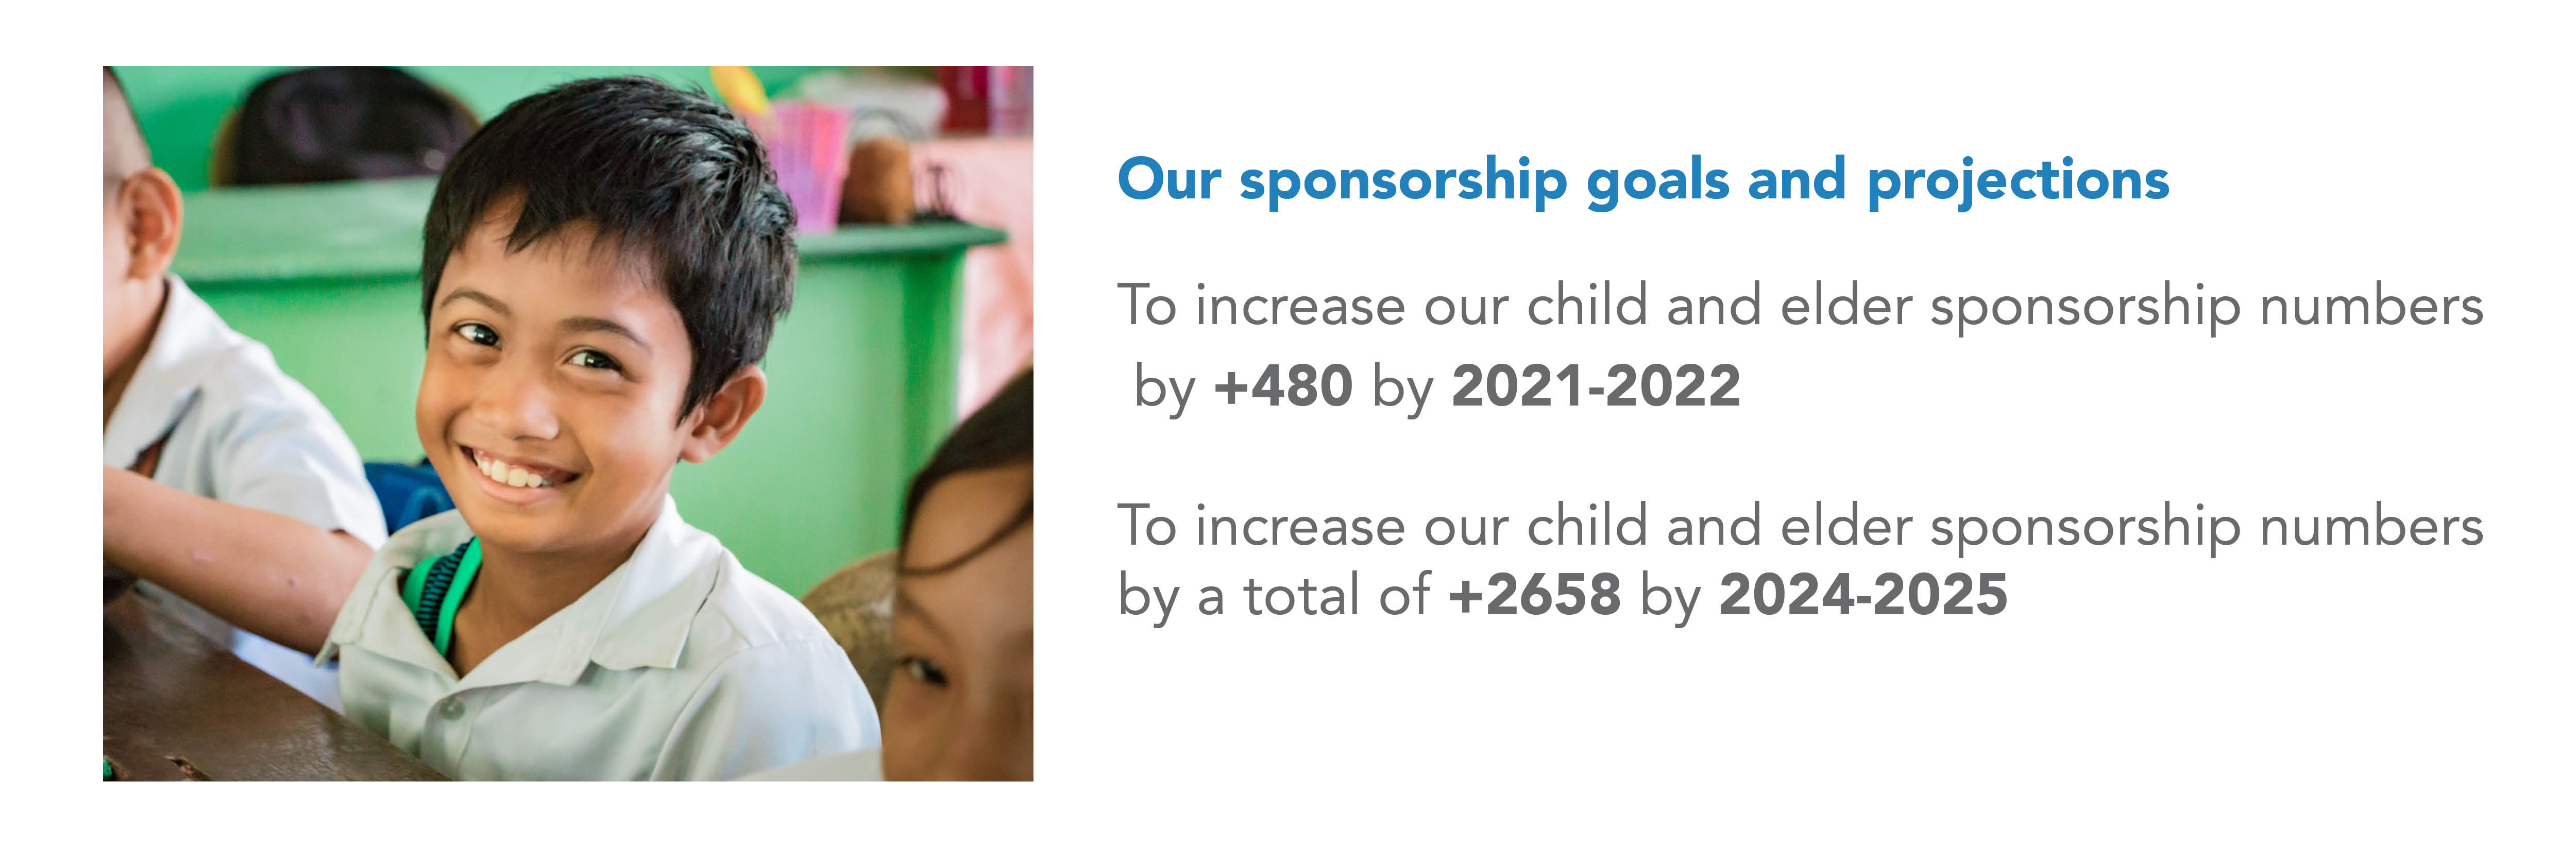 sponsorship projection picture 2